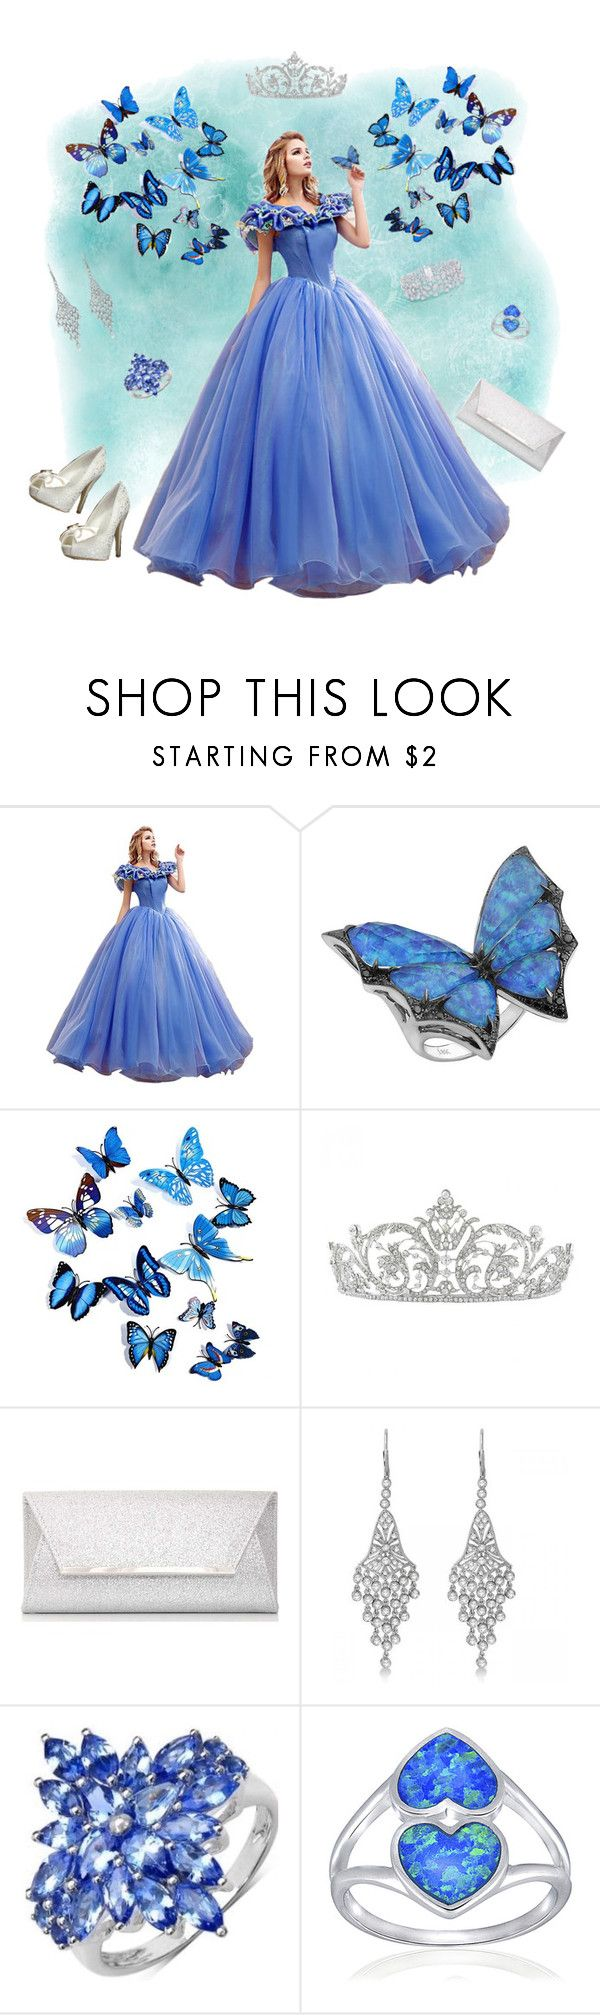 """butterfly dreams"" by valorierose ❤ liked on Polyvore featuring Stephen Webster, Dorothy Perkins, Allurez, Graff and Silver Treasures"